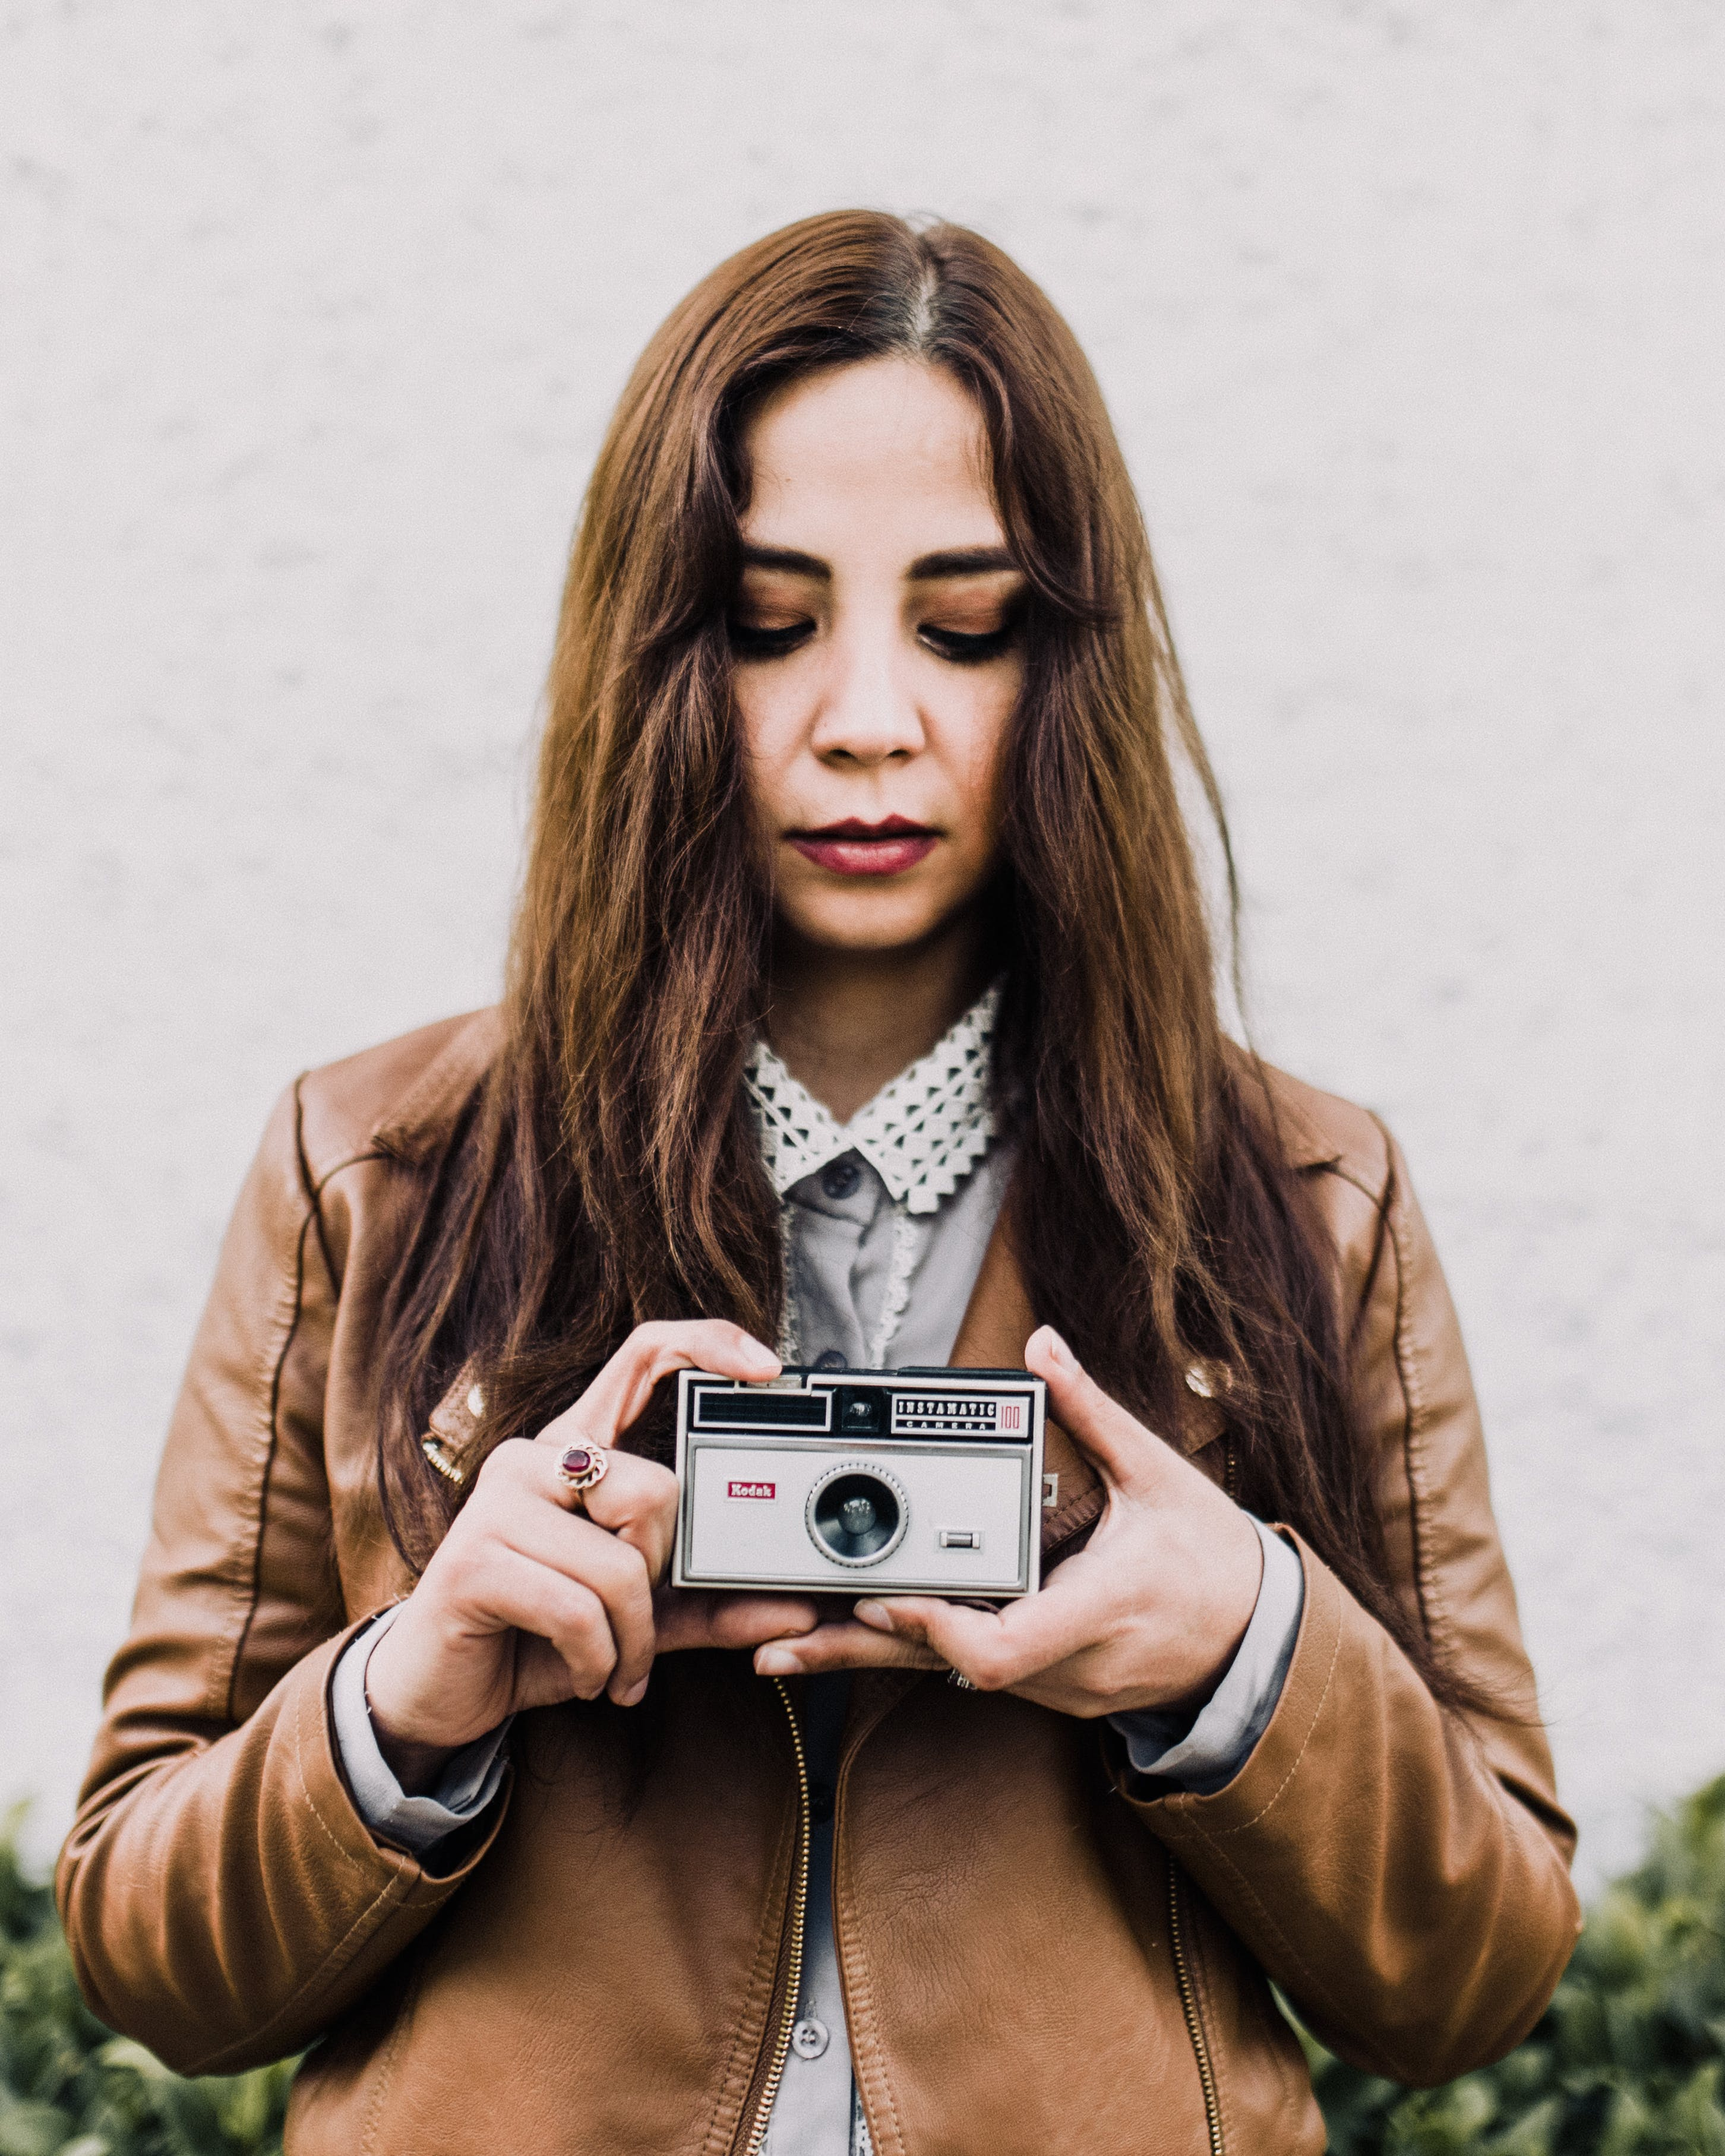 Woman Holding Gray Camera on Focus Photography